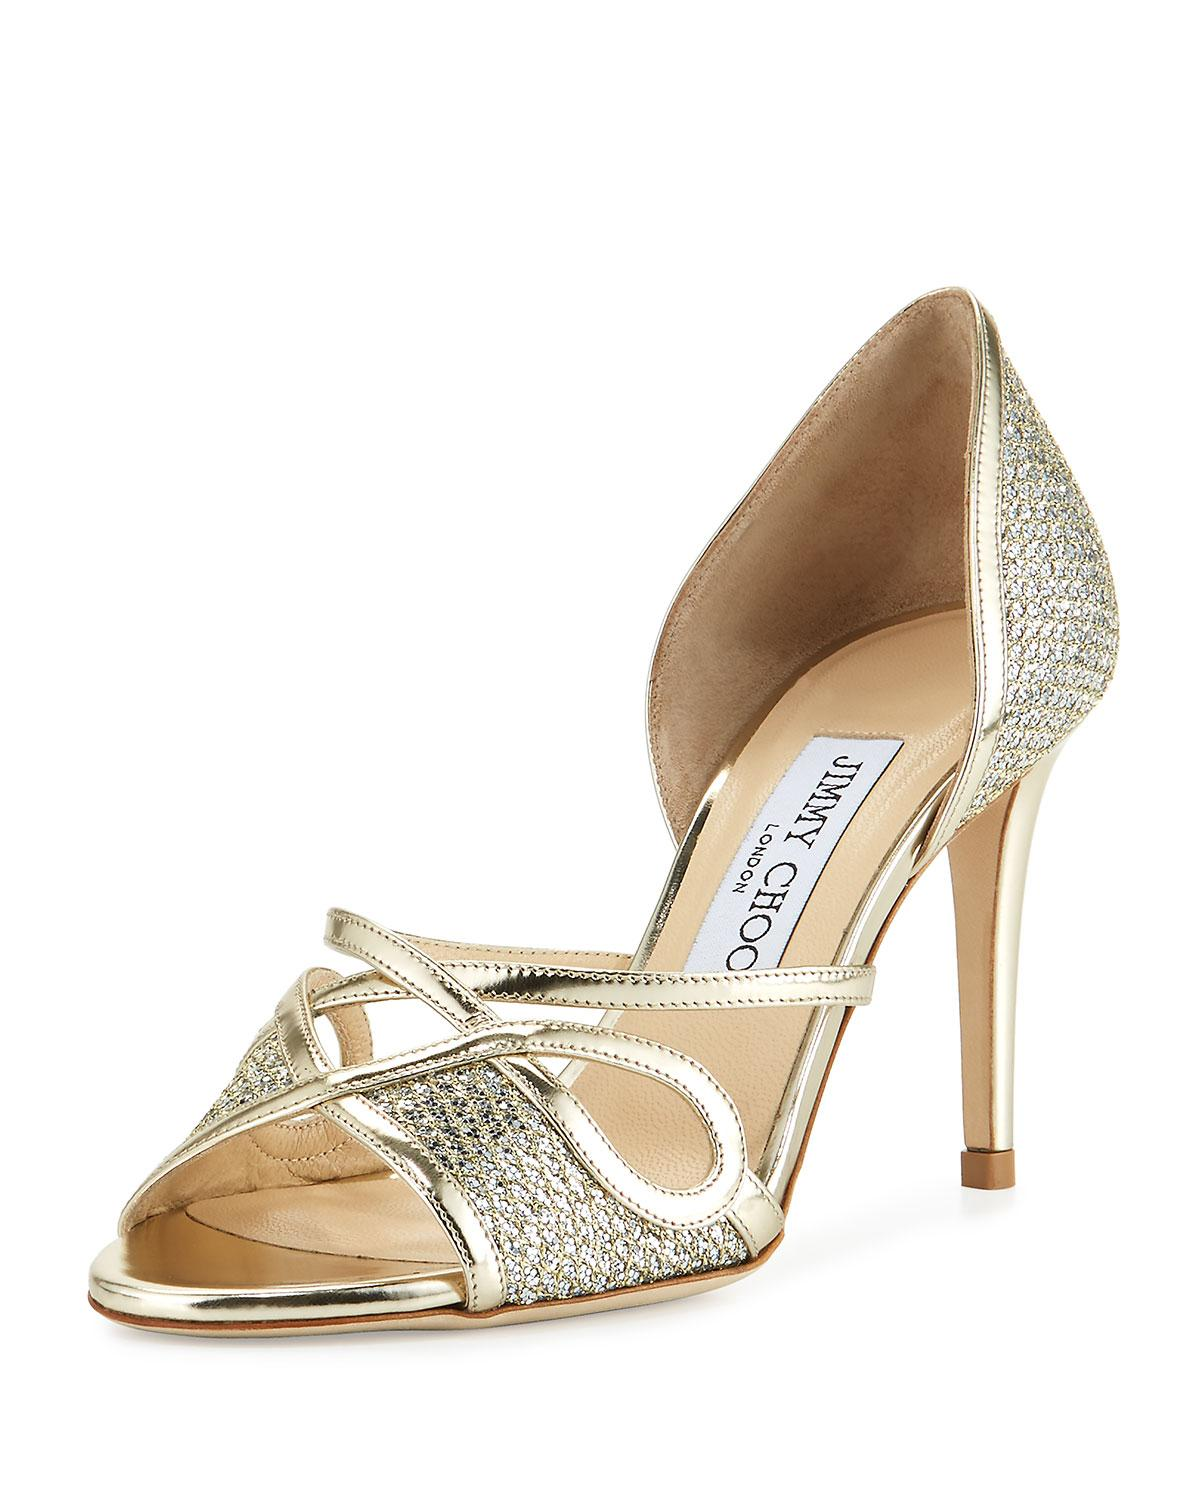 f033ddbf445 JUST ordered my wedding shoes!!!! So excited! :) Show me yours!